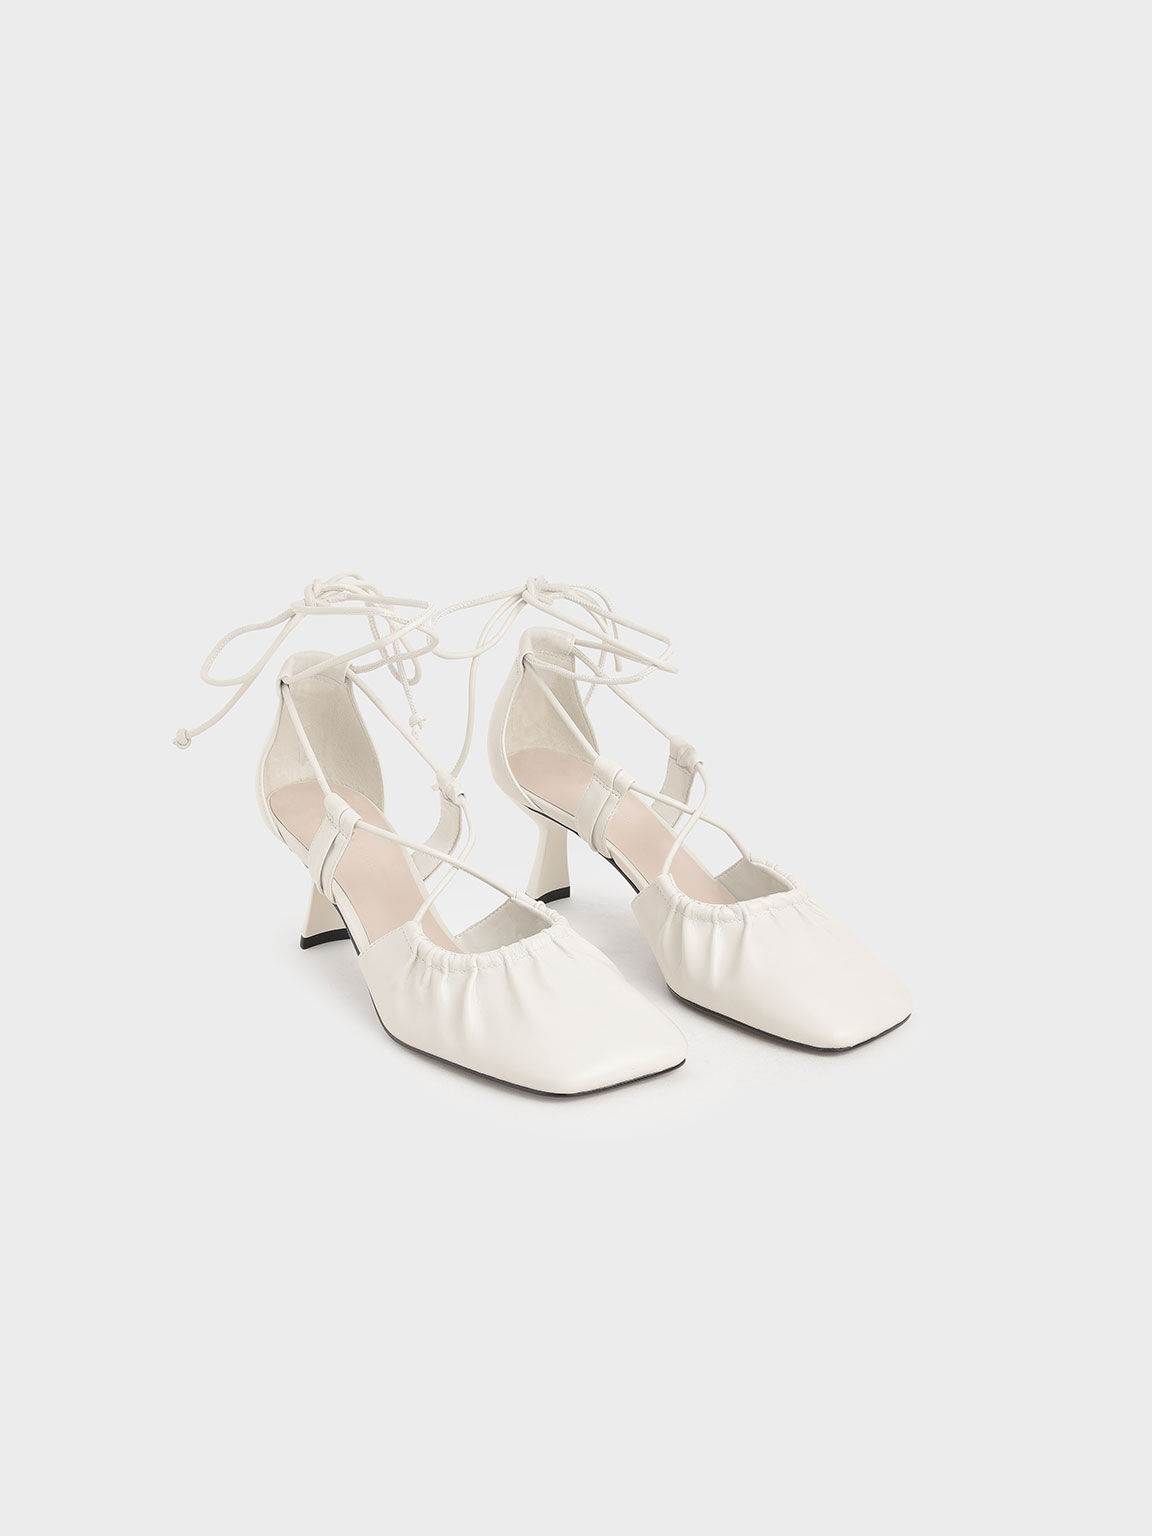 Ruched Ankle Tie Heels, White, hi-res